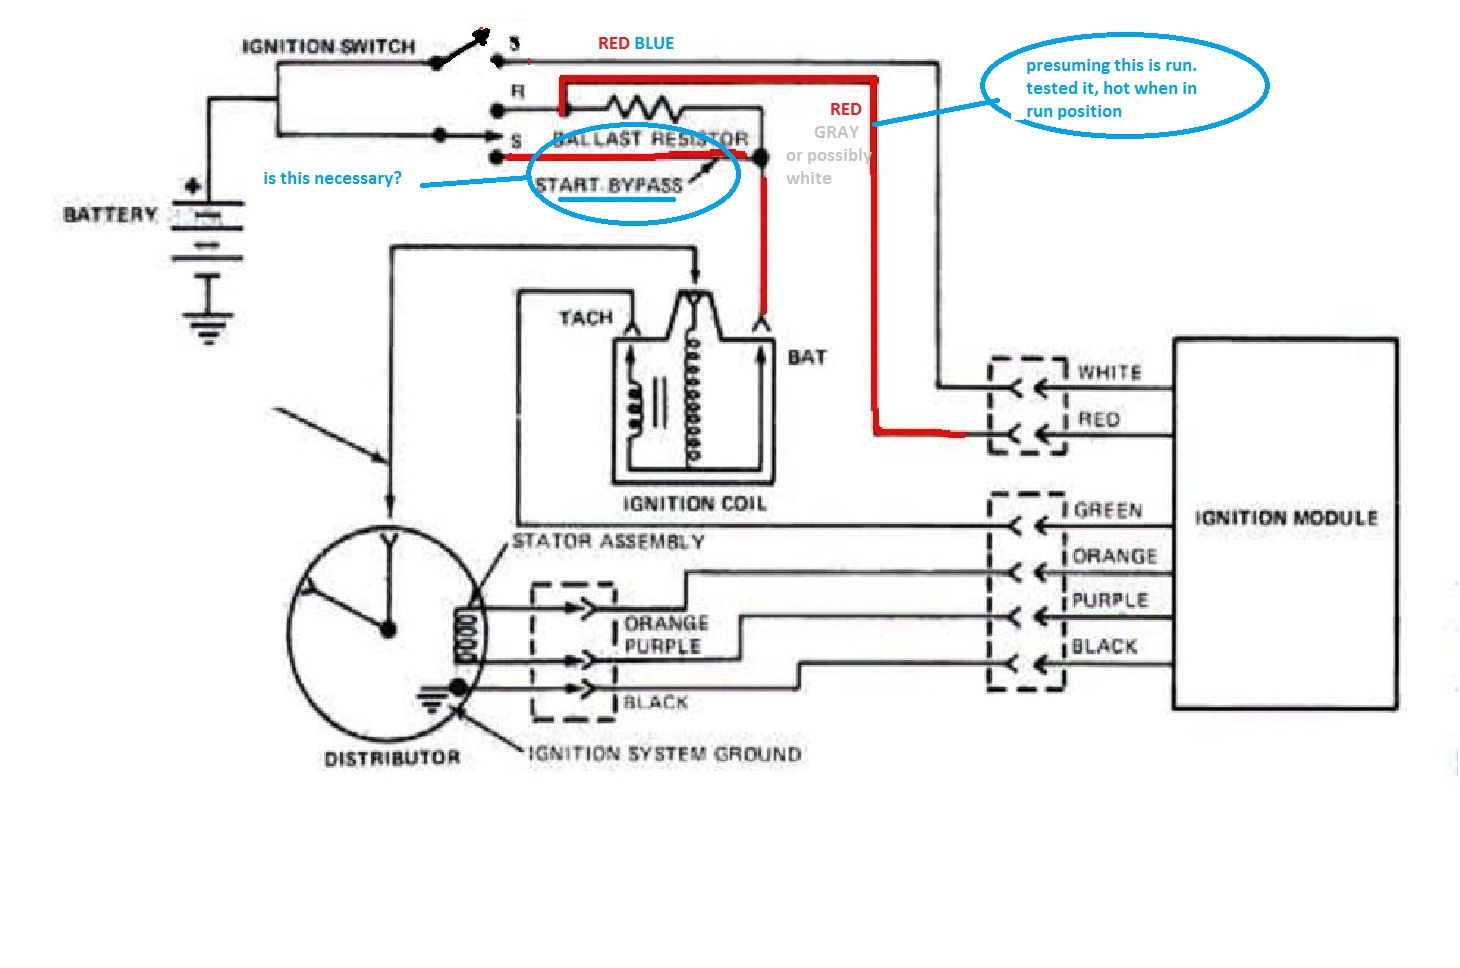 small resolution of 87 ford ignition system wiring diagram wiring diagram view ford 351 ignition wiring